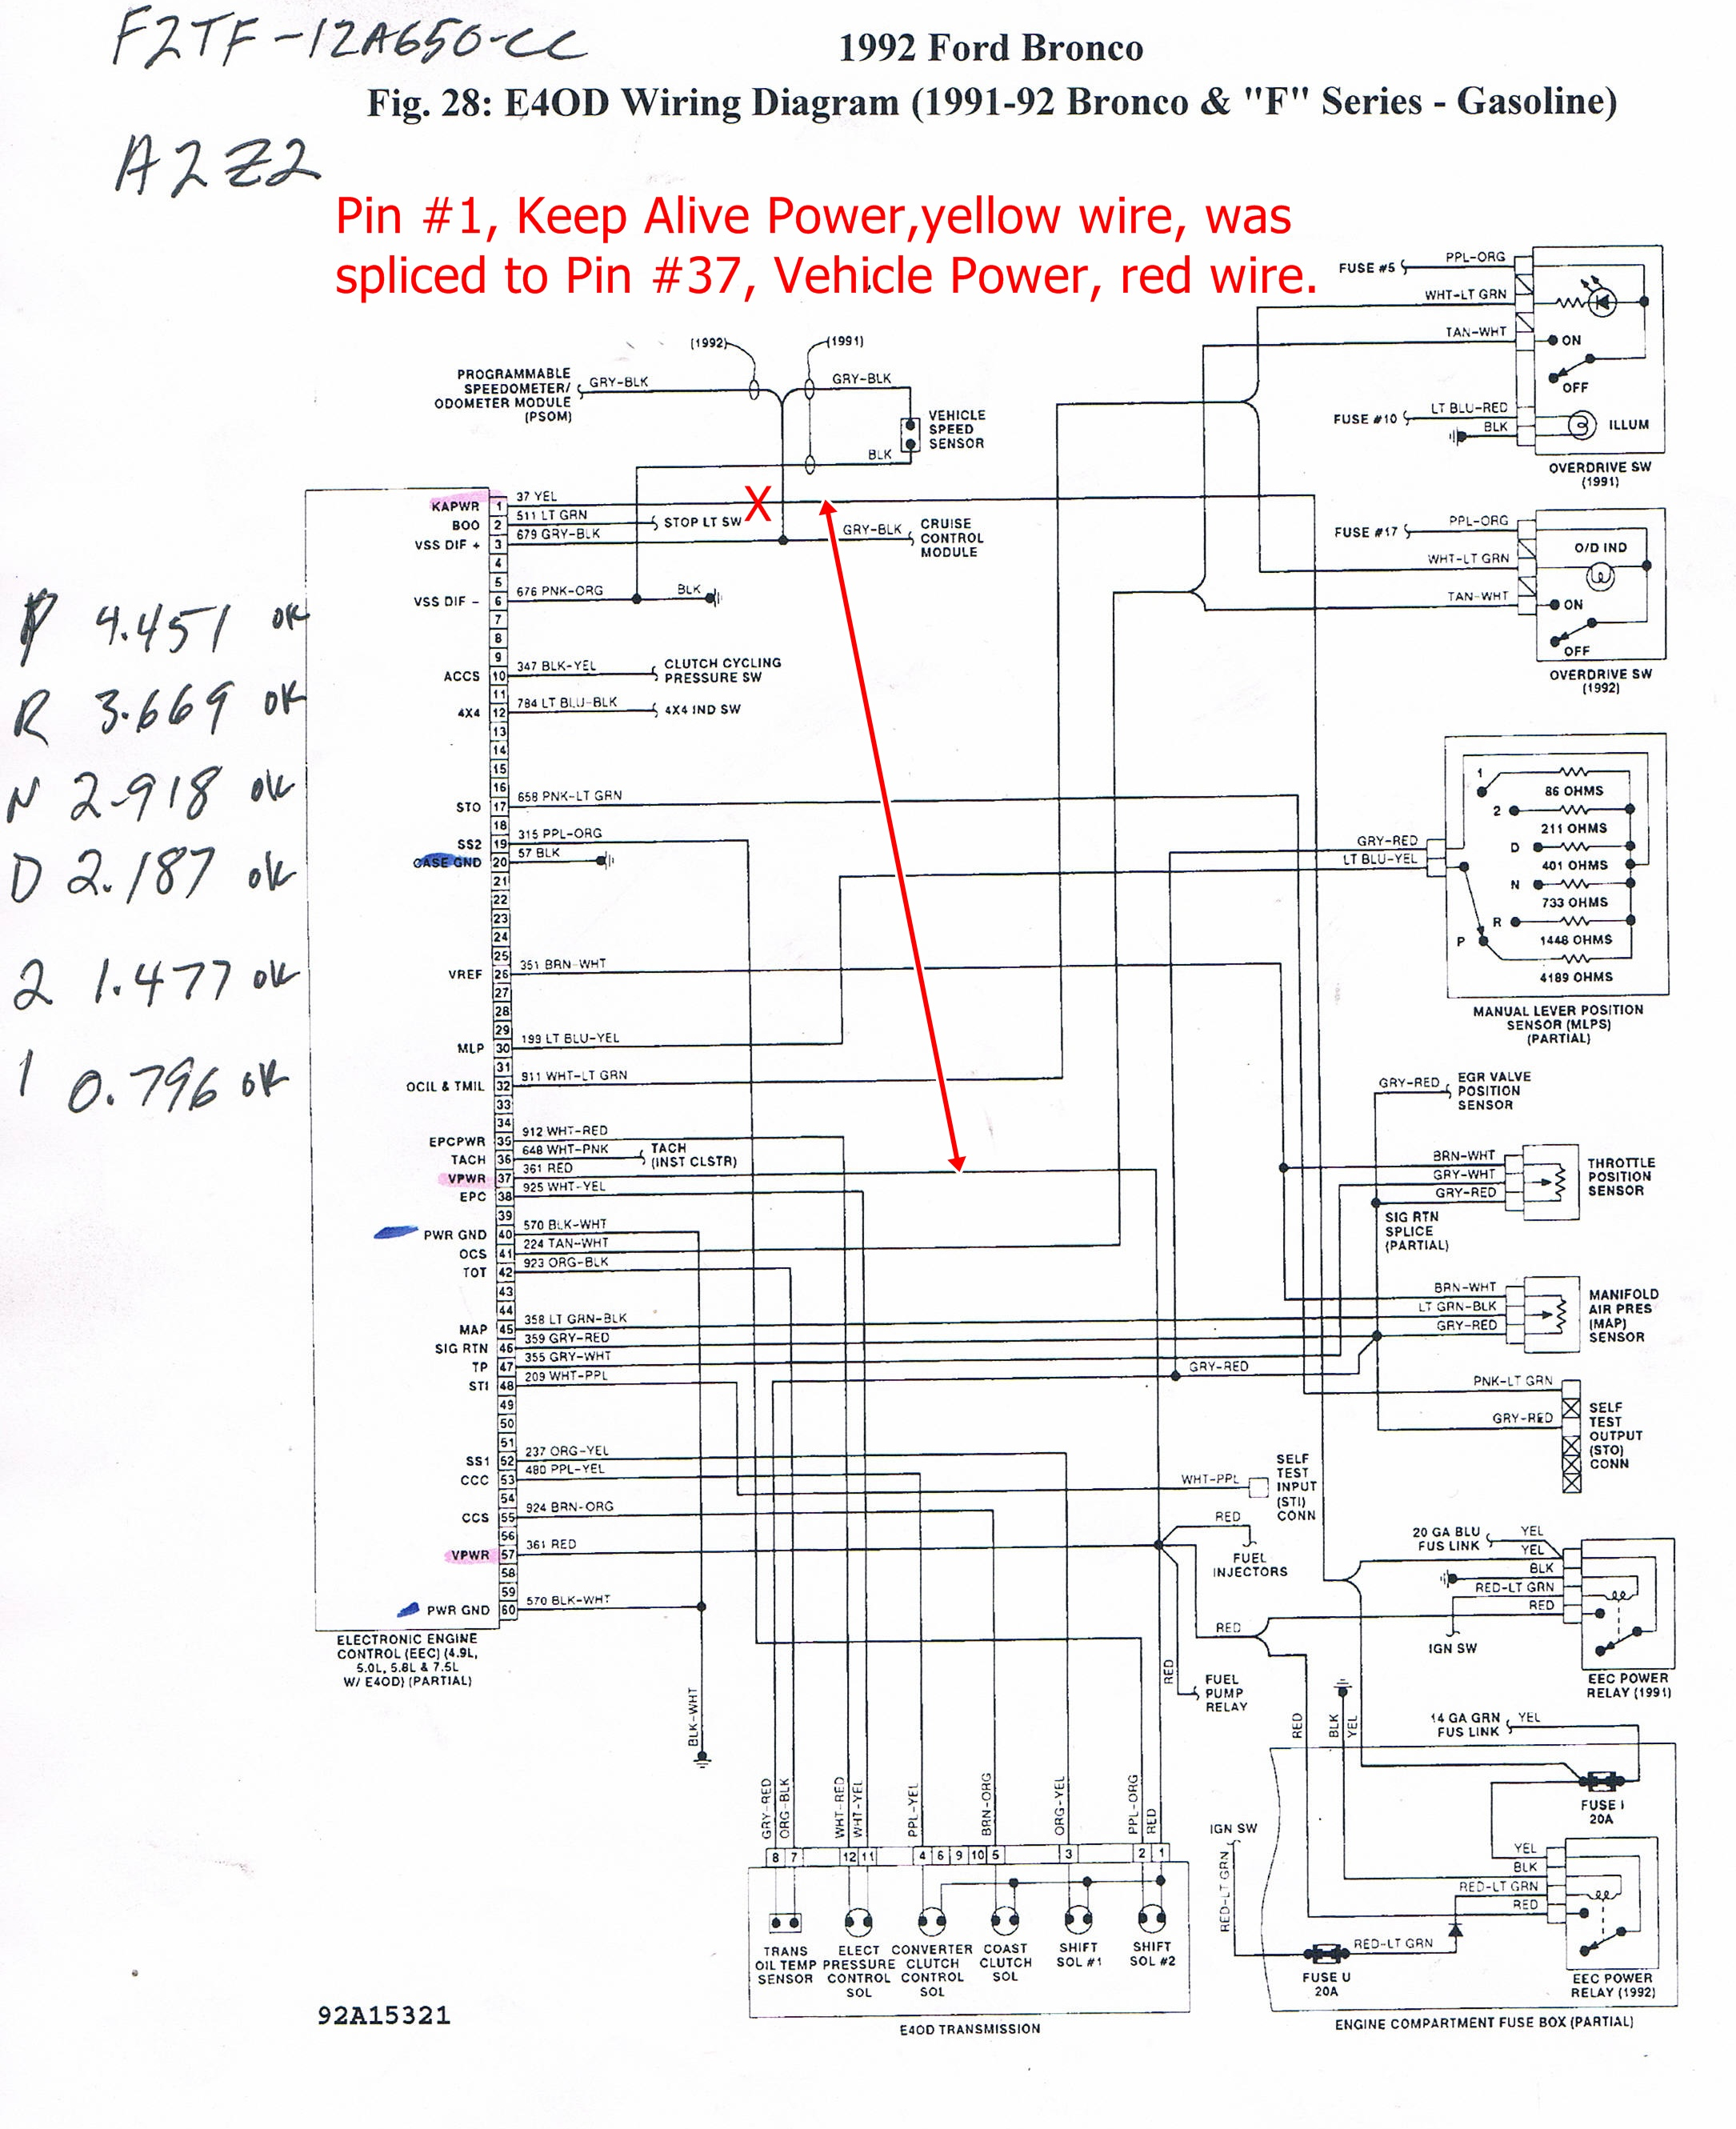 Lexus 2003 Headlight Wiring Diagram Opinions About 97 Yukon Fuse Box Volvo Headlamp Wire Harness Auto Electrical Rh Stanford Edu Uk Co Gov Hardtobelieve Me Amp 2005 1997 Es300